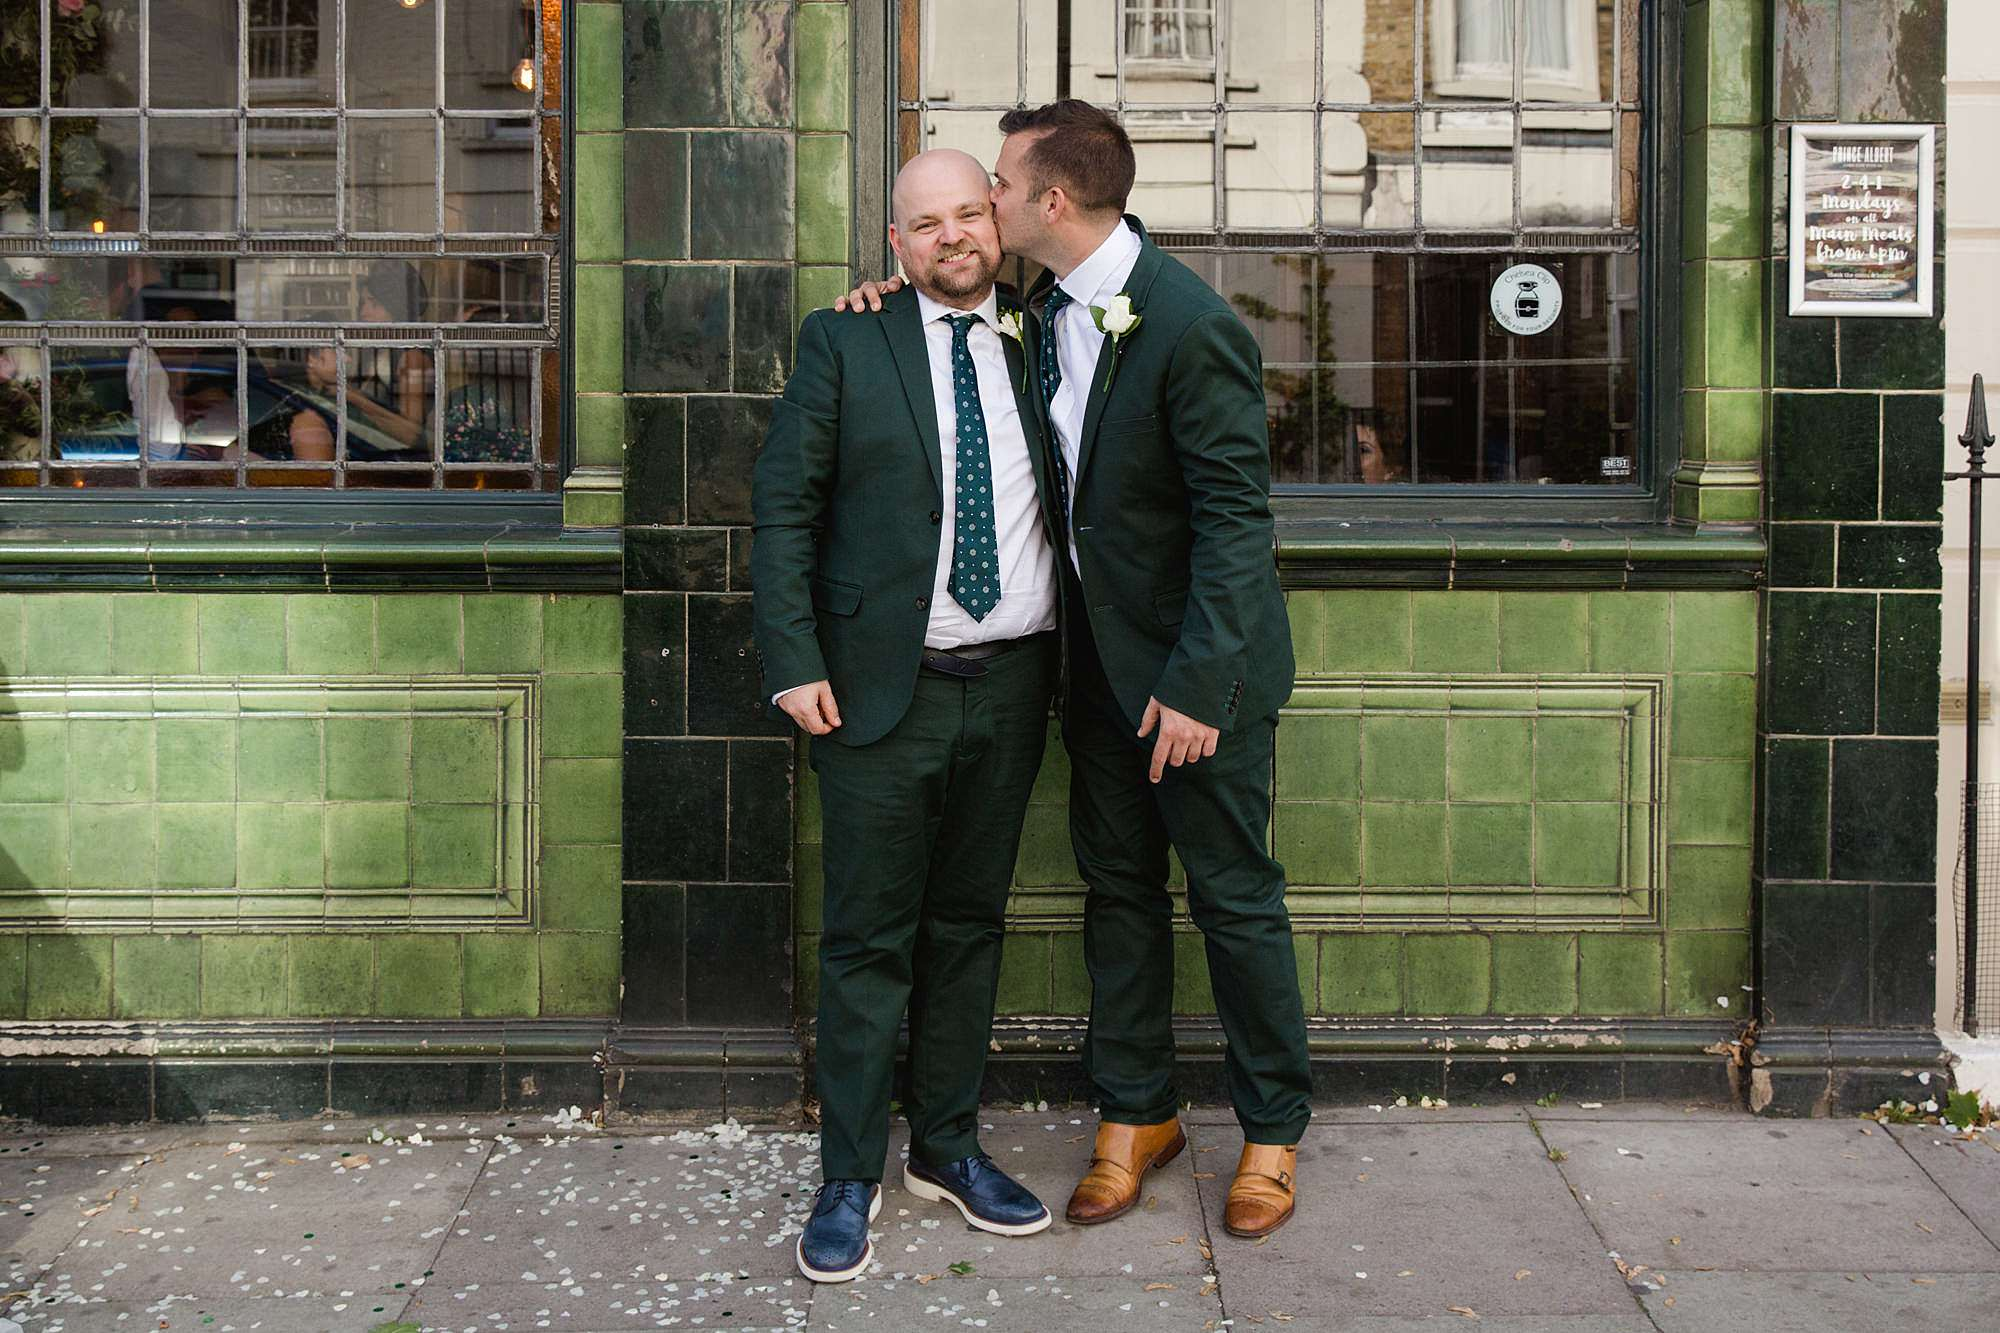 Prince albert camden wedding groom and best man